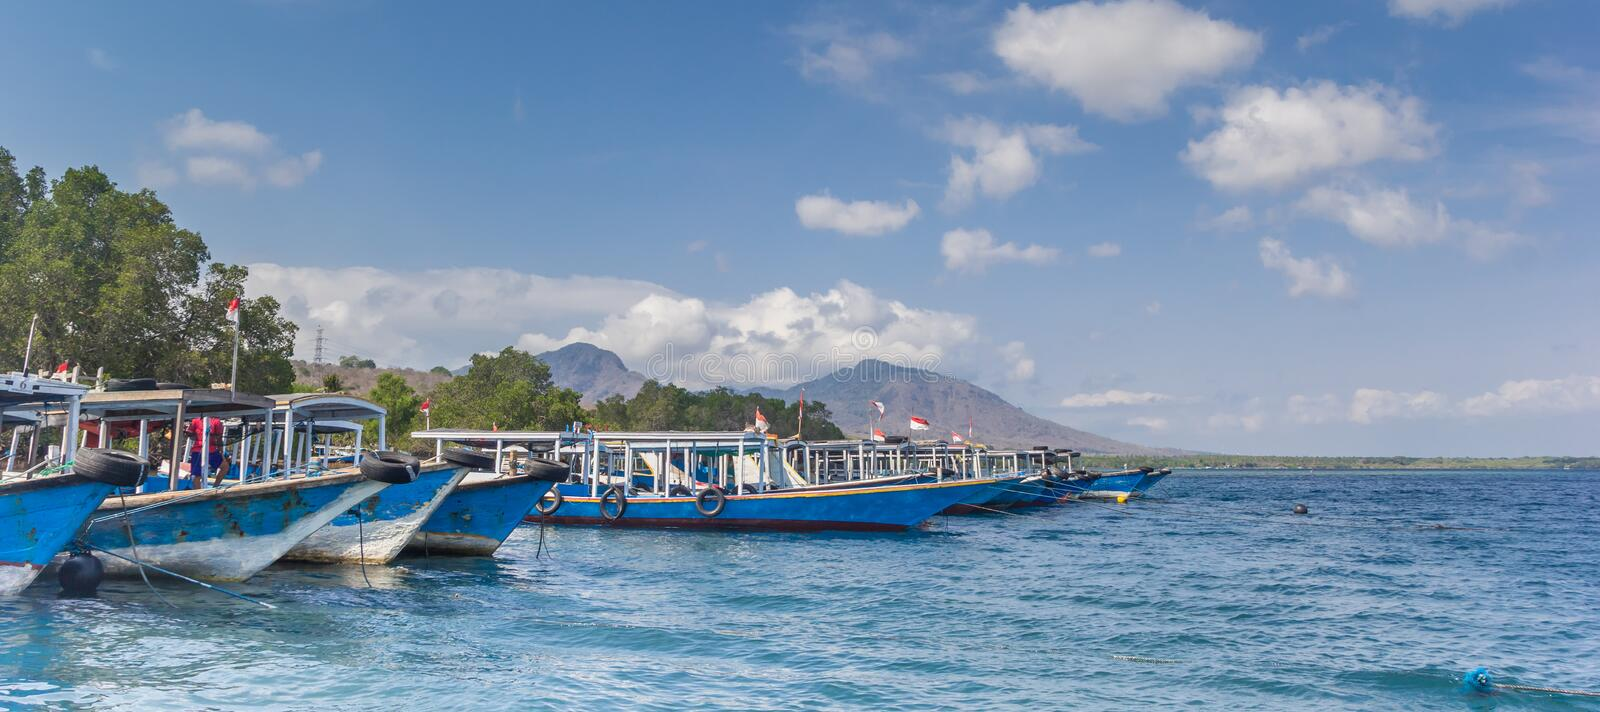 Panorama of wooden boats in the Bali Barat National Park. Indonesia stock images